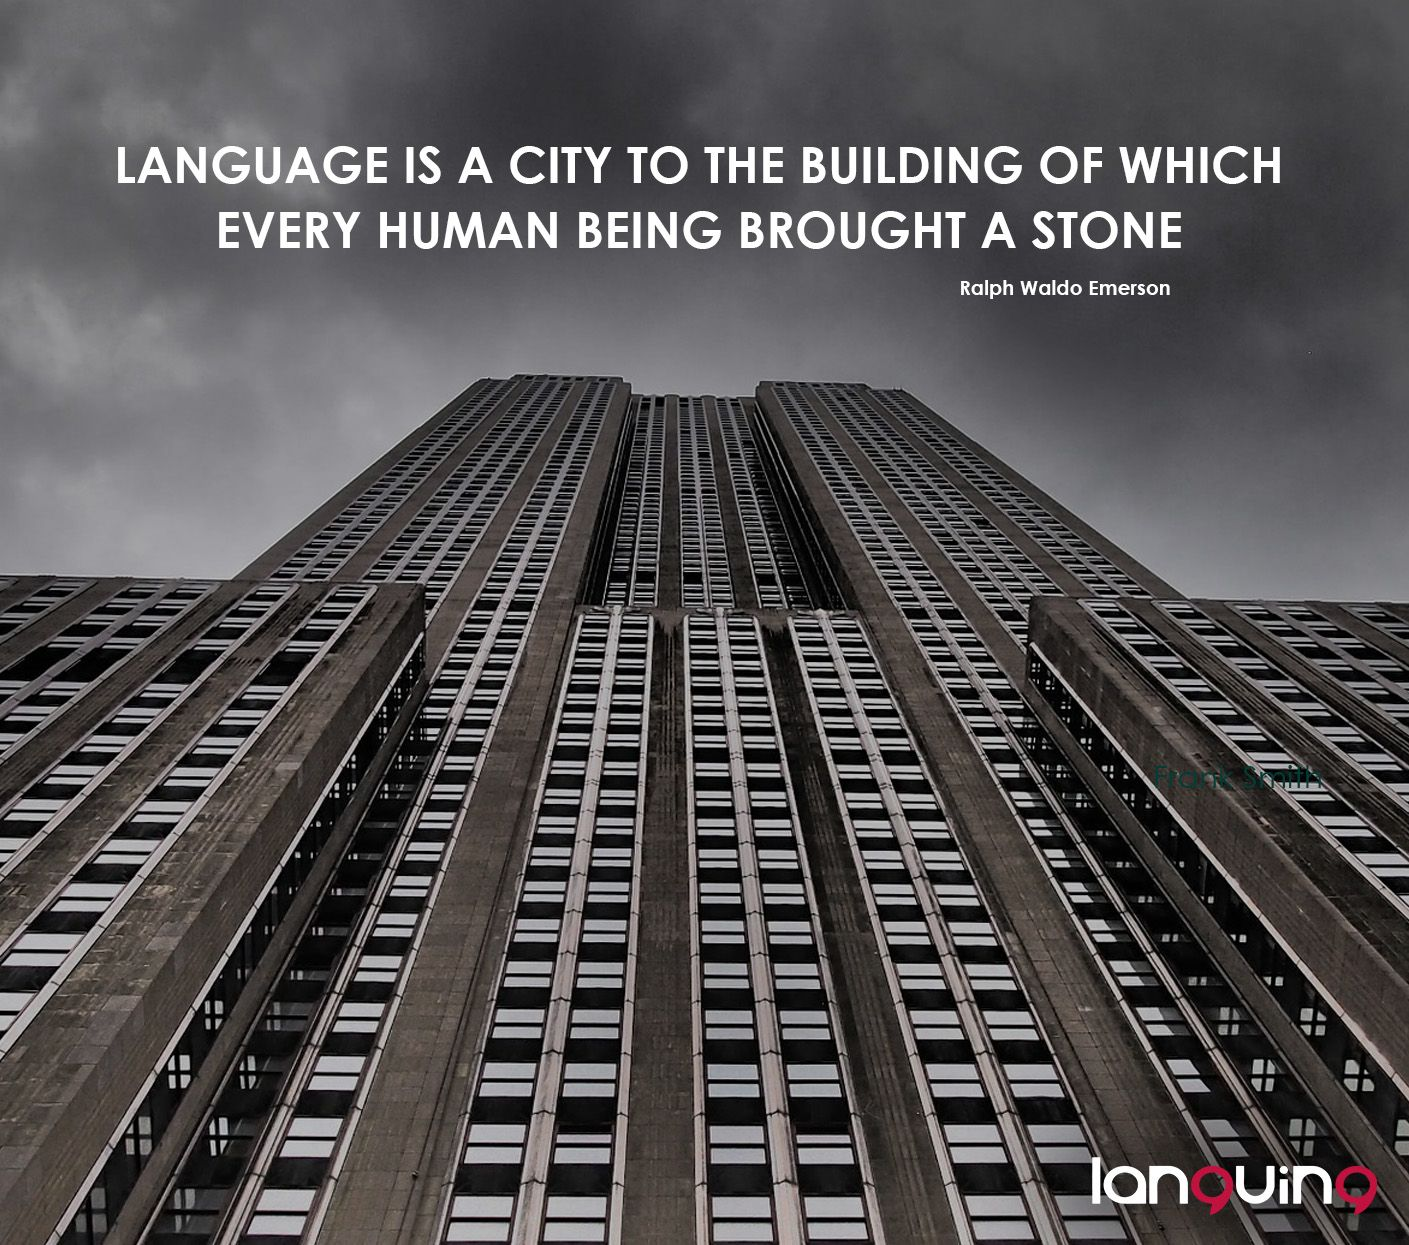 Language is a city to the building of which every human being brought a stone - Ralph Waldo Emerson